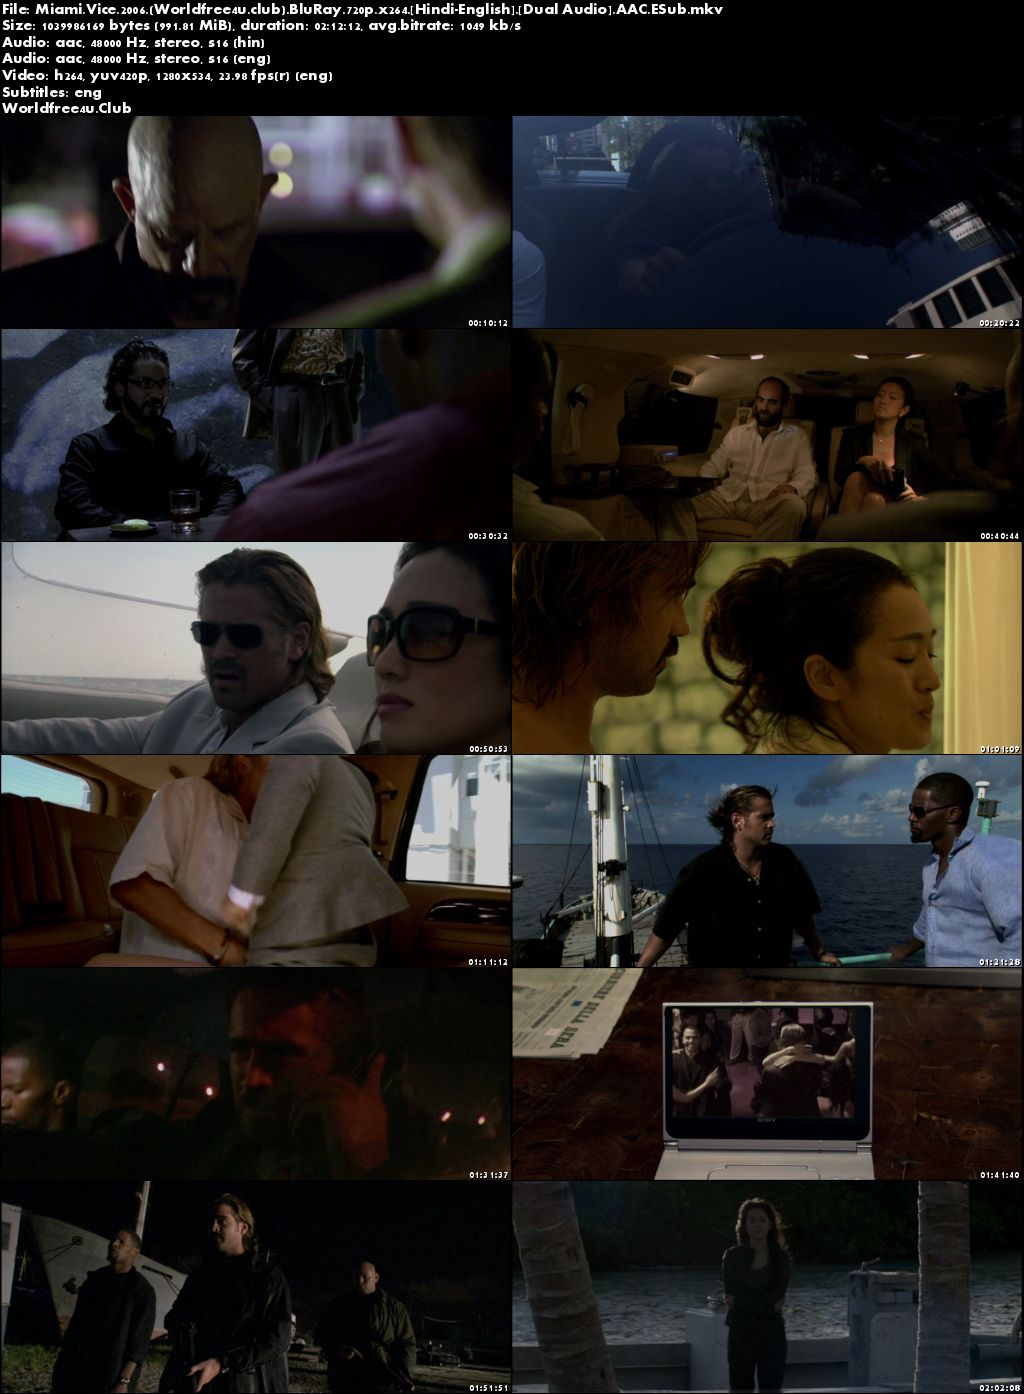 Screen Shoot of Miami Vice 2006 BRRip 720p Dual Audio Unrated Cut In Hindi English ESub Watch Online Hindi Dubbed Hd